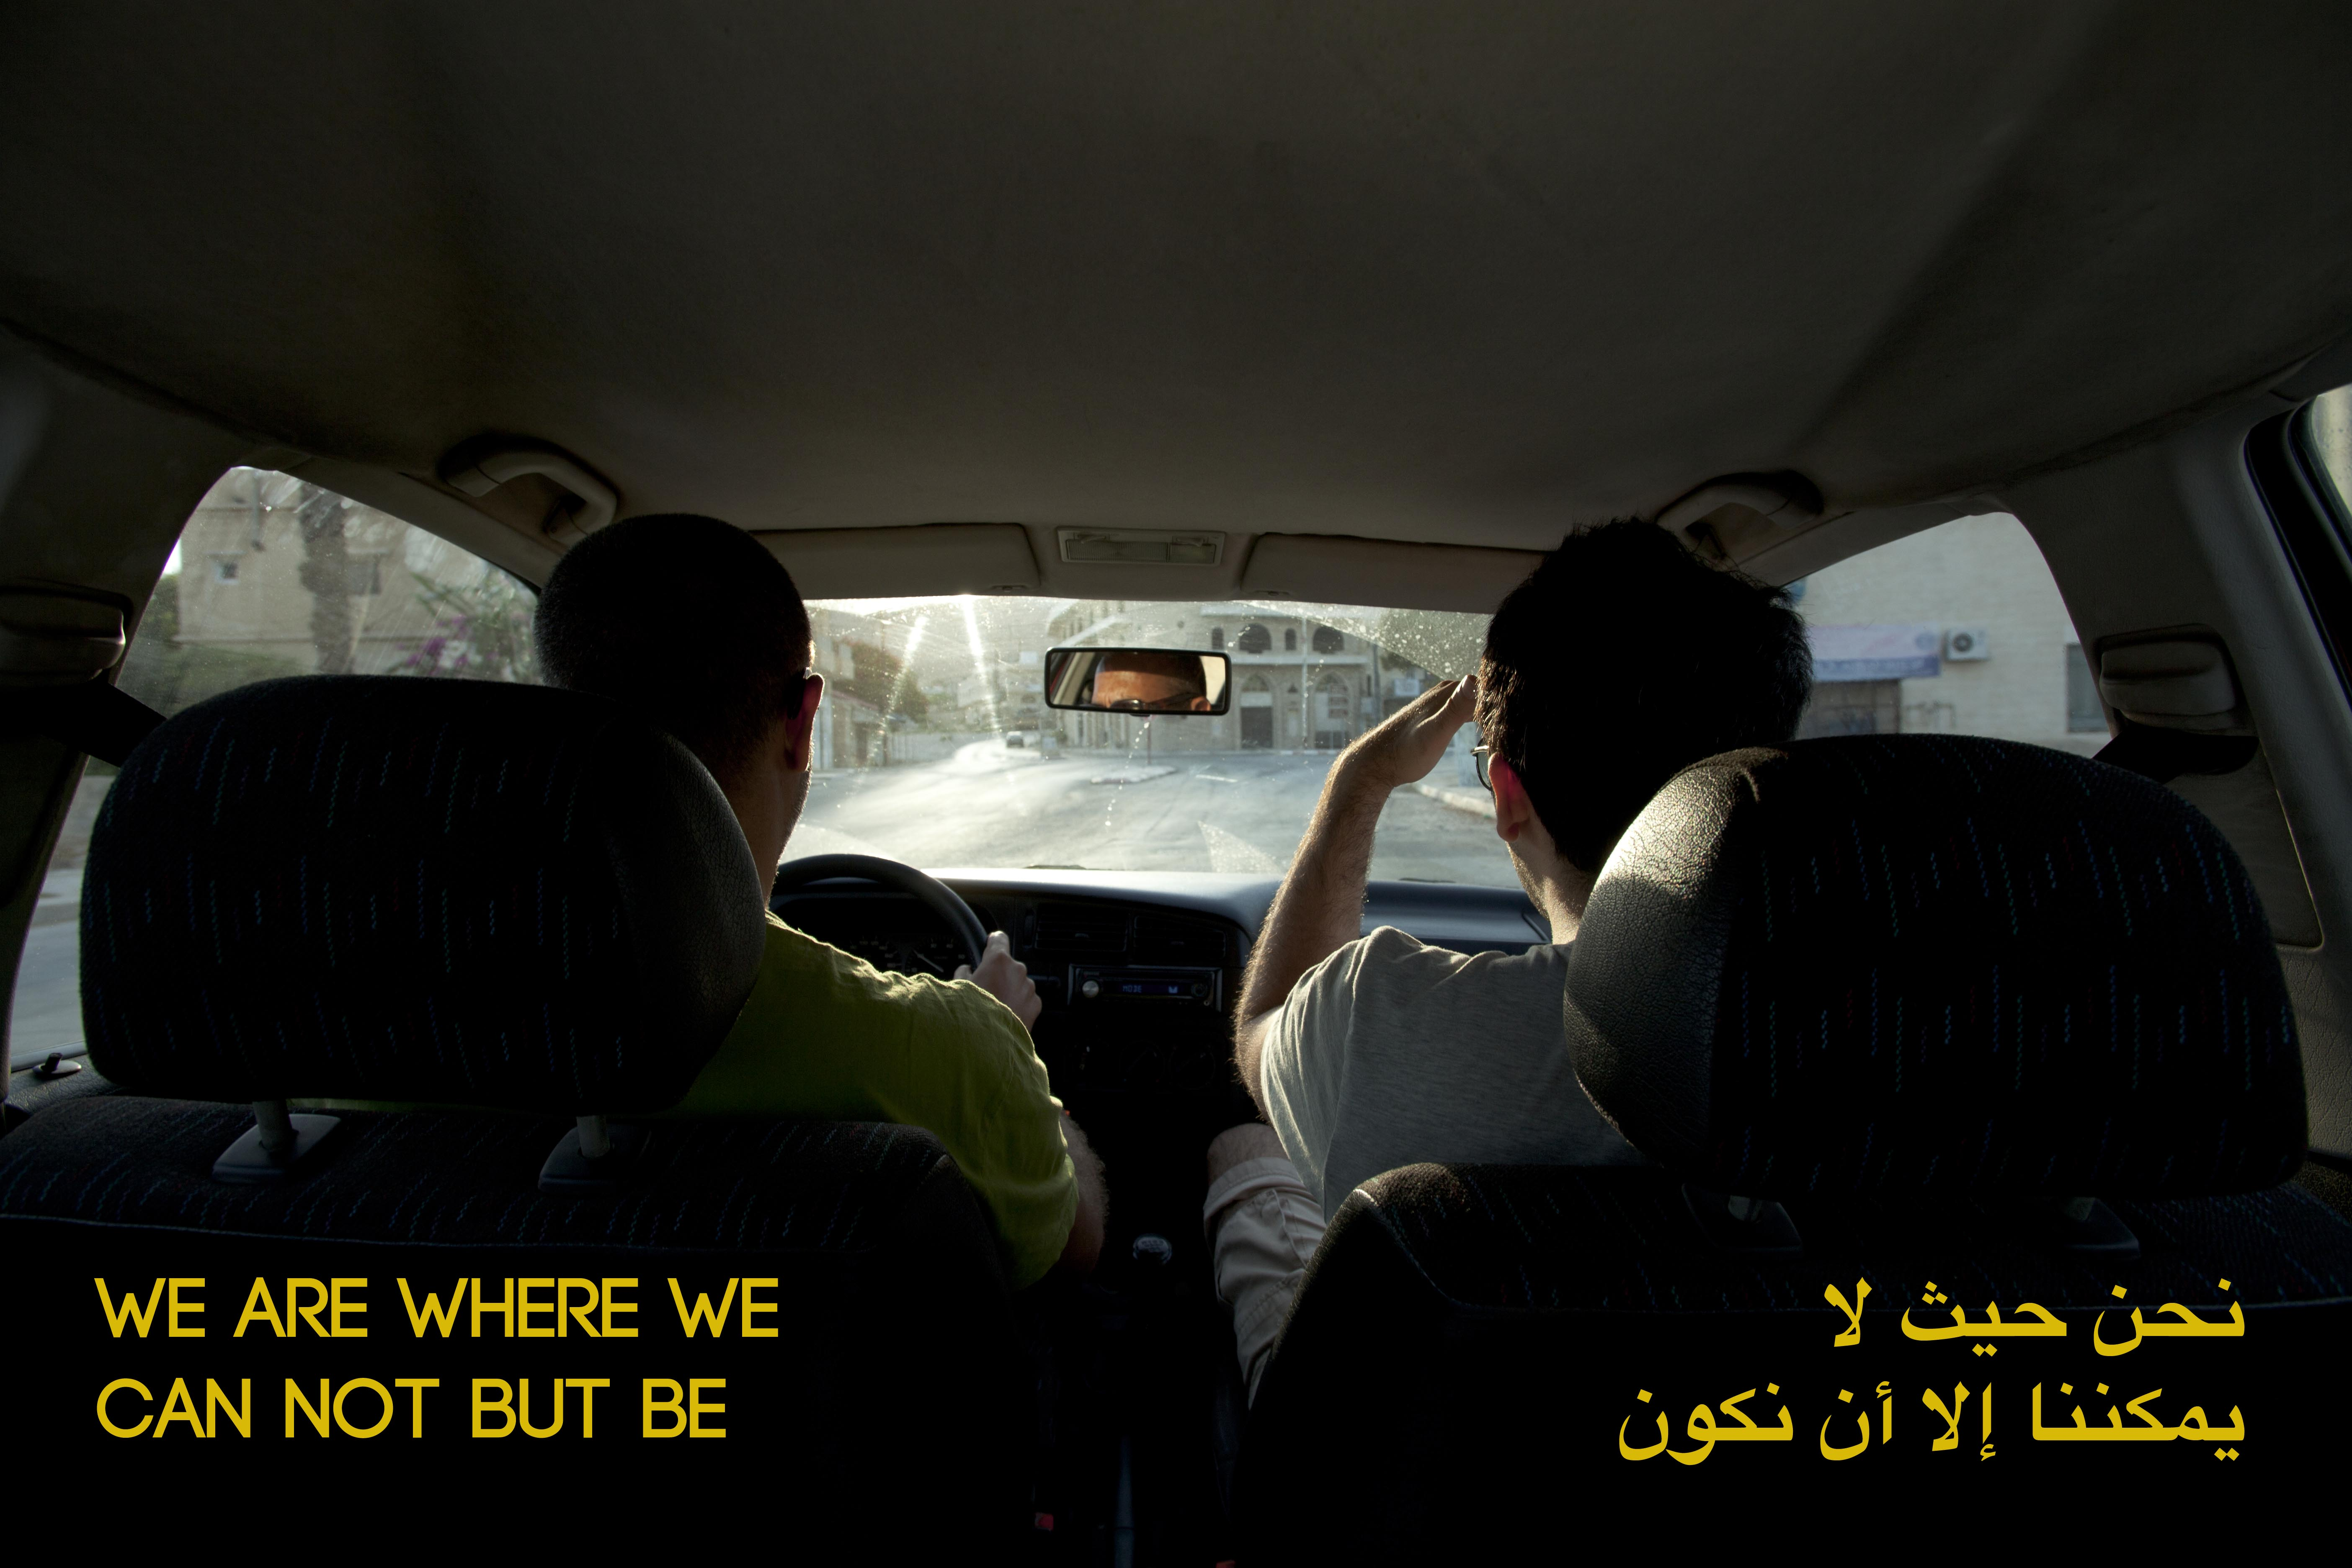 Basel Abbas and Ruanne Abou-Rahme, The Incidental Insurgents (2012- ongoing), Chapter 2, Video Still 6